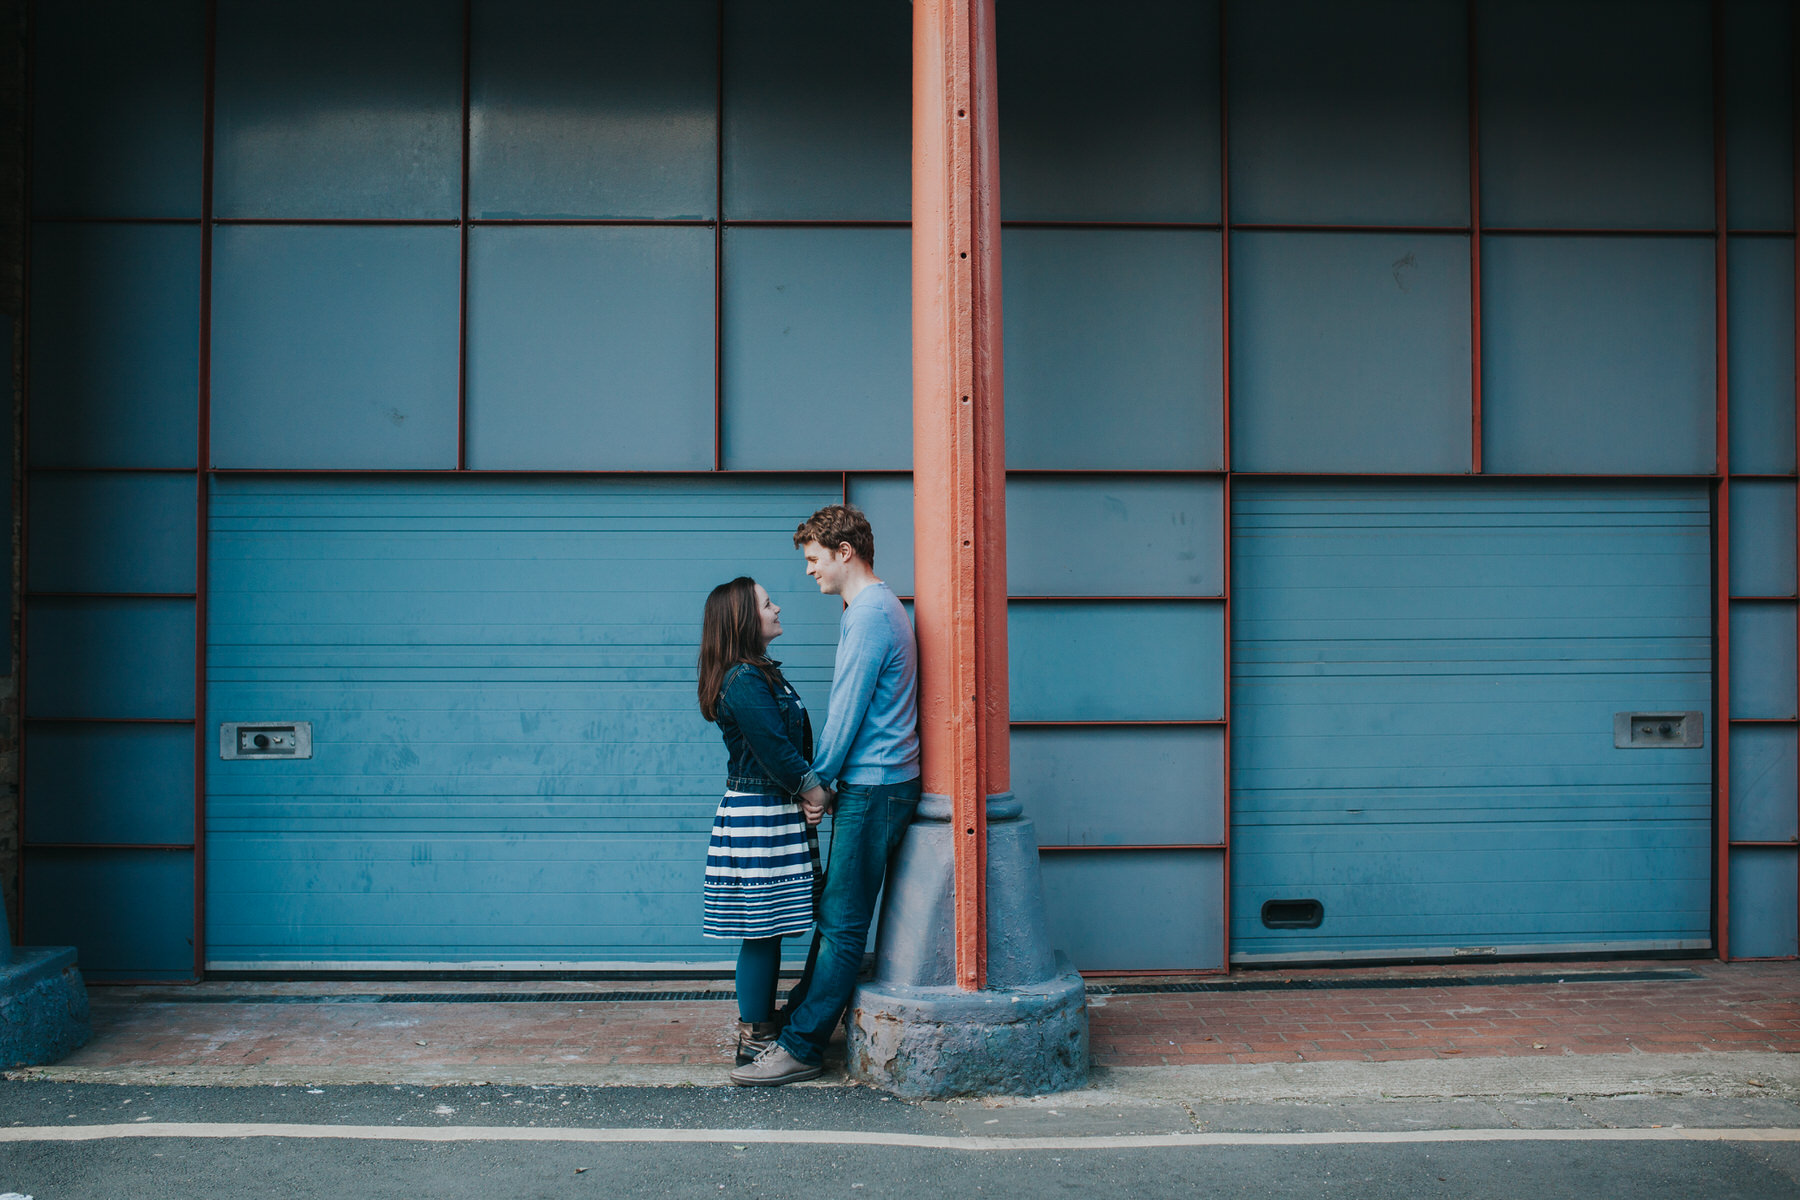 81-Quirky-engagement-London-sweet-couple-blue.jpg